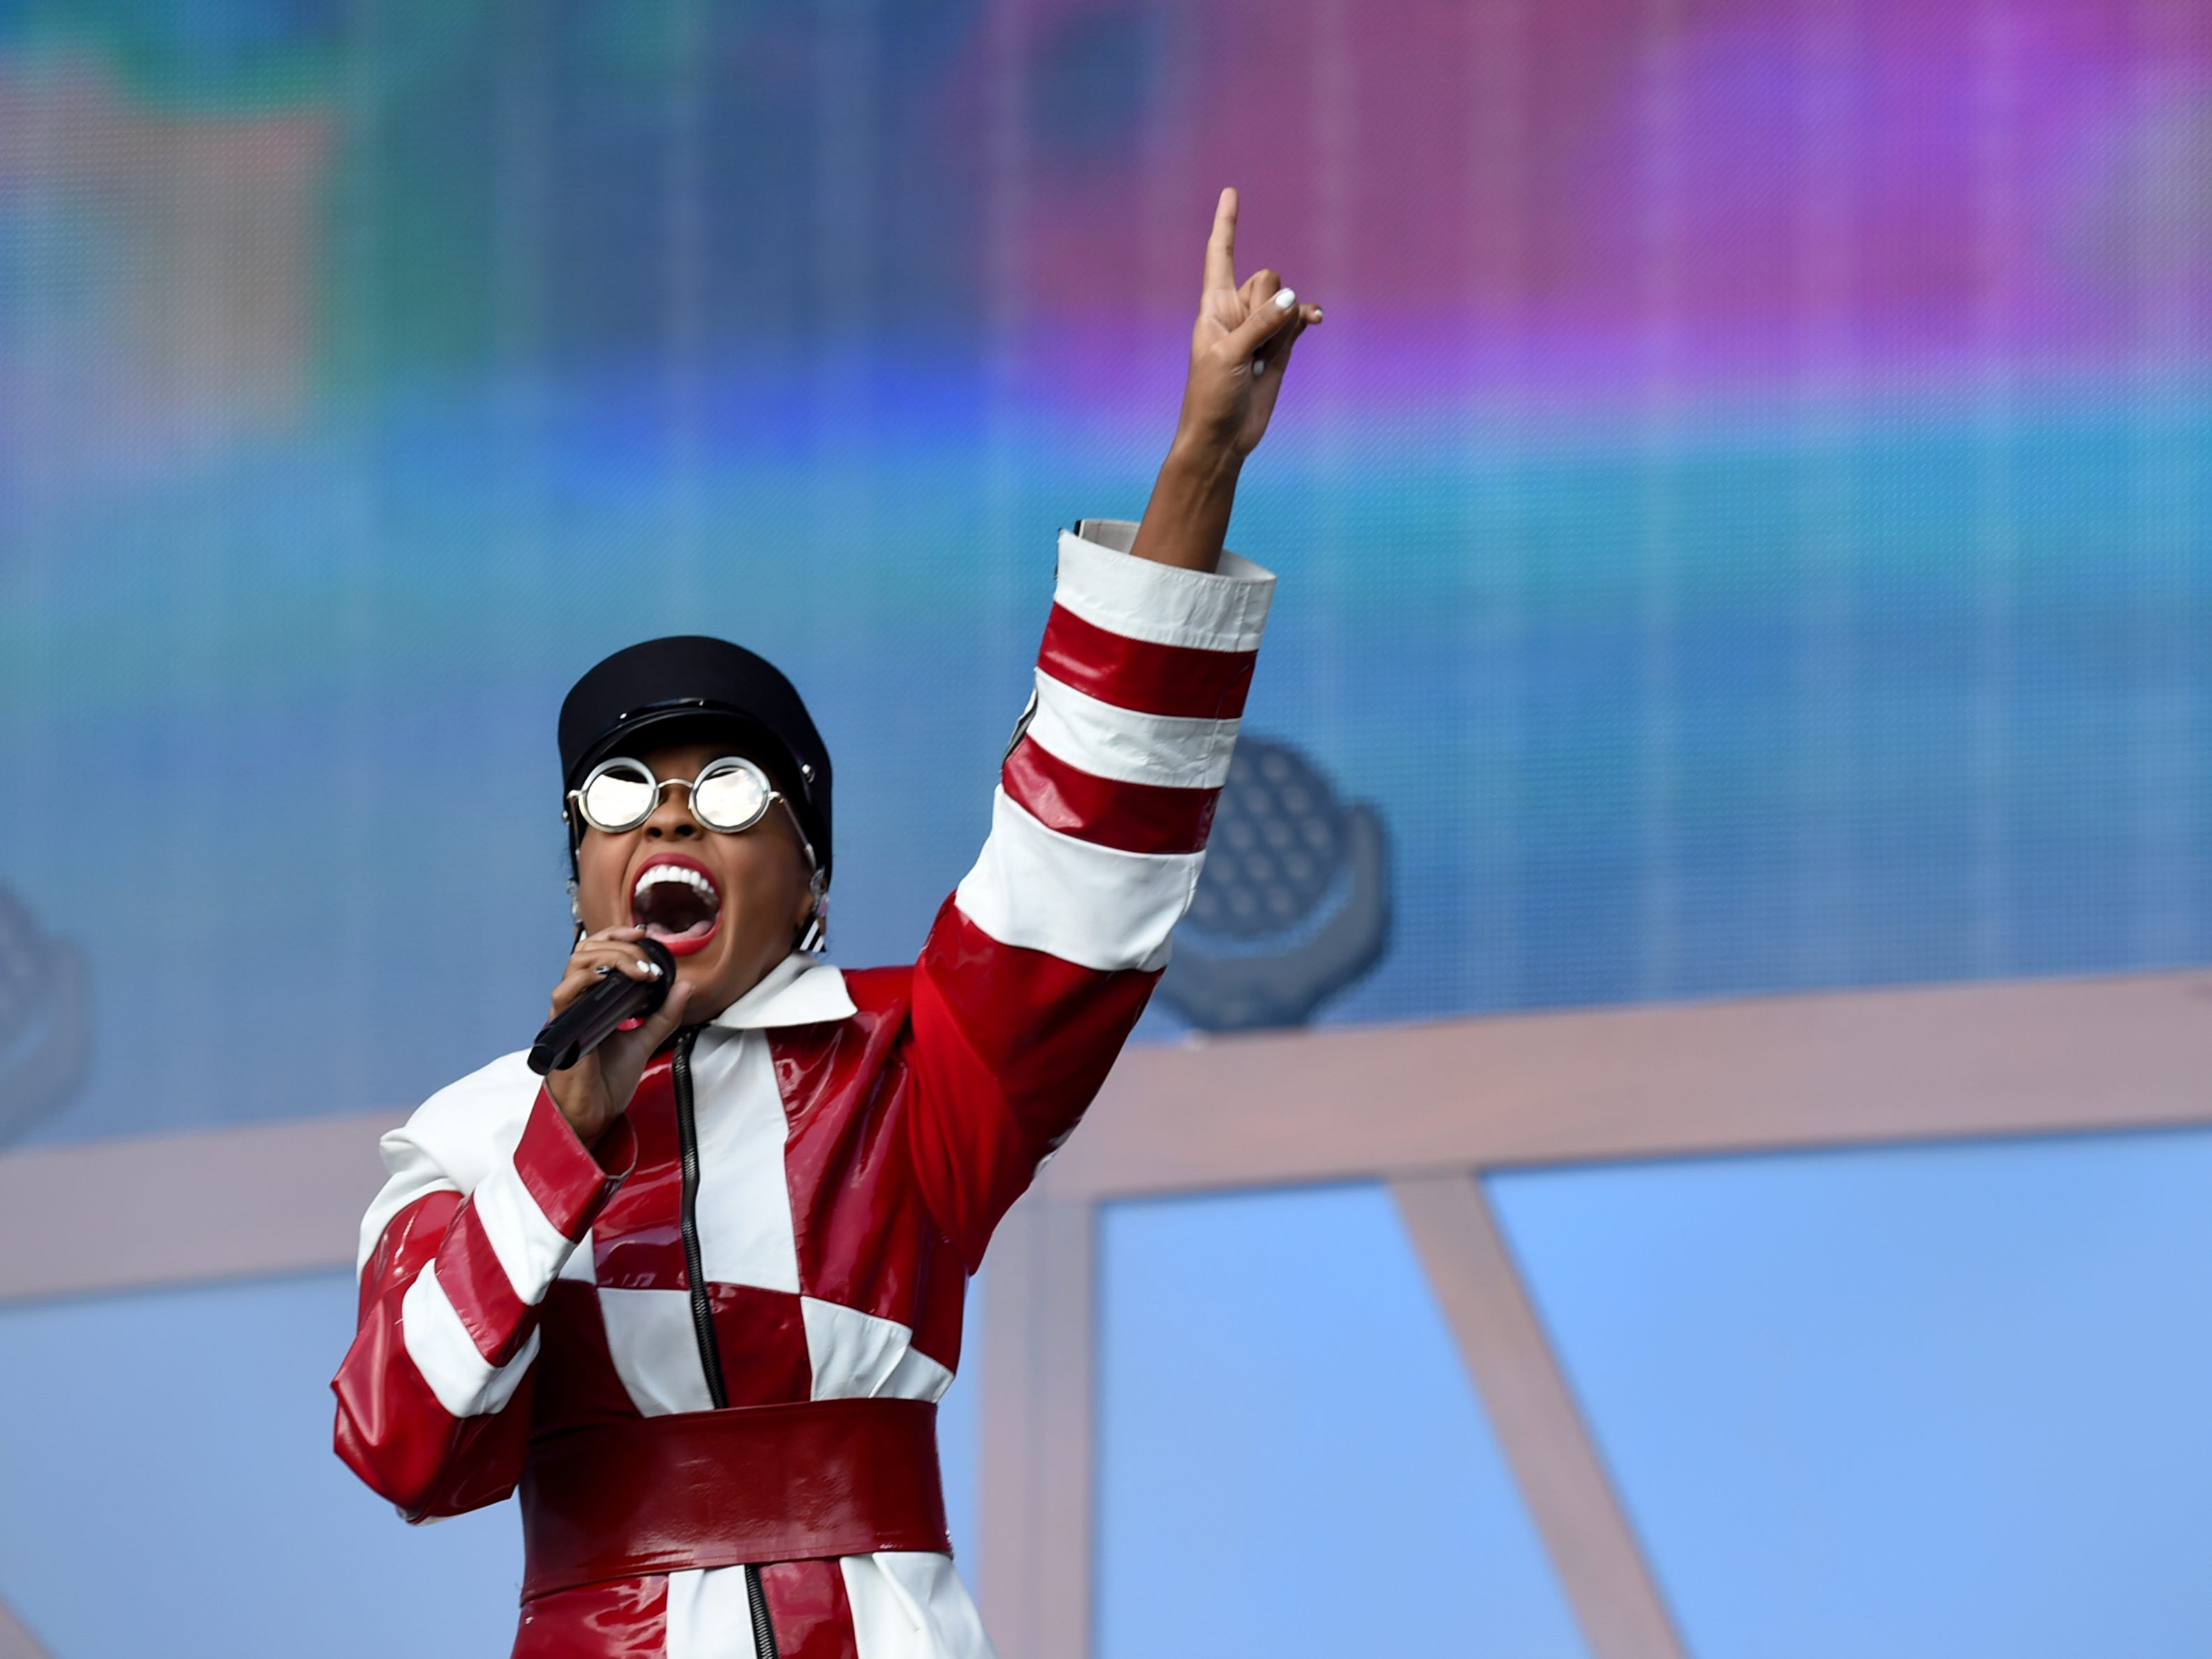 Singer Janelle Monae performs at the 2018 Global Citizen Festival in Central Park on Saturday, Sept. 29, 2018, in New York.